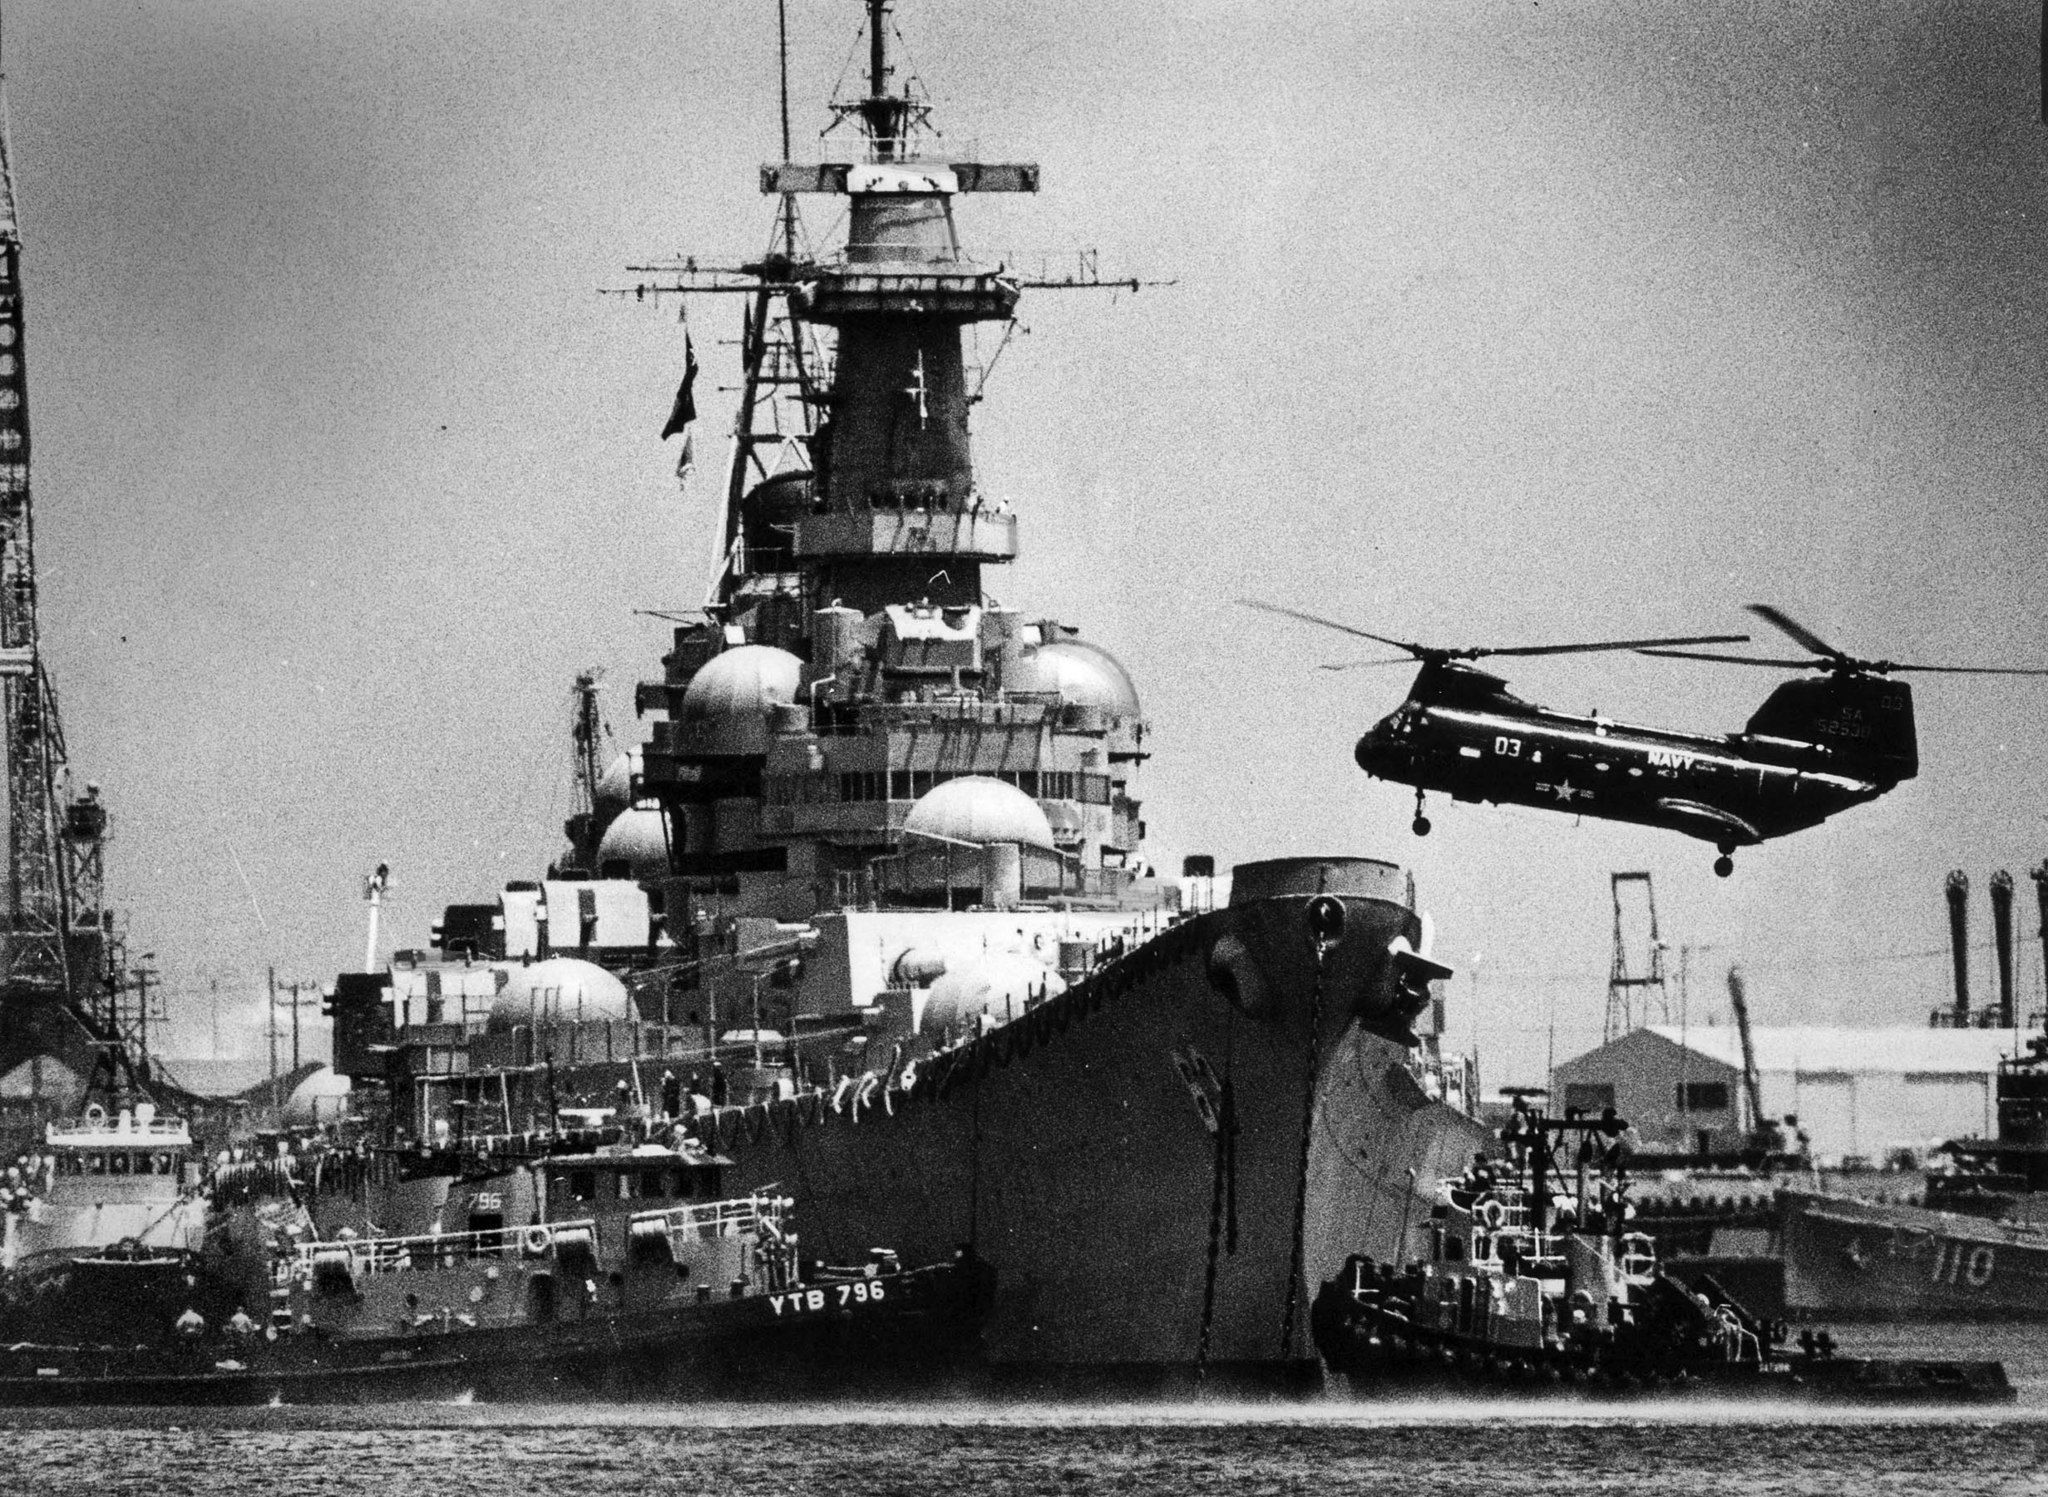 May 25, 1984: The battleship USS Missouri arrves in Long Beach from Bremerton, Washl, for a $425-mil